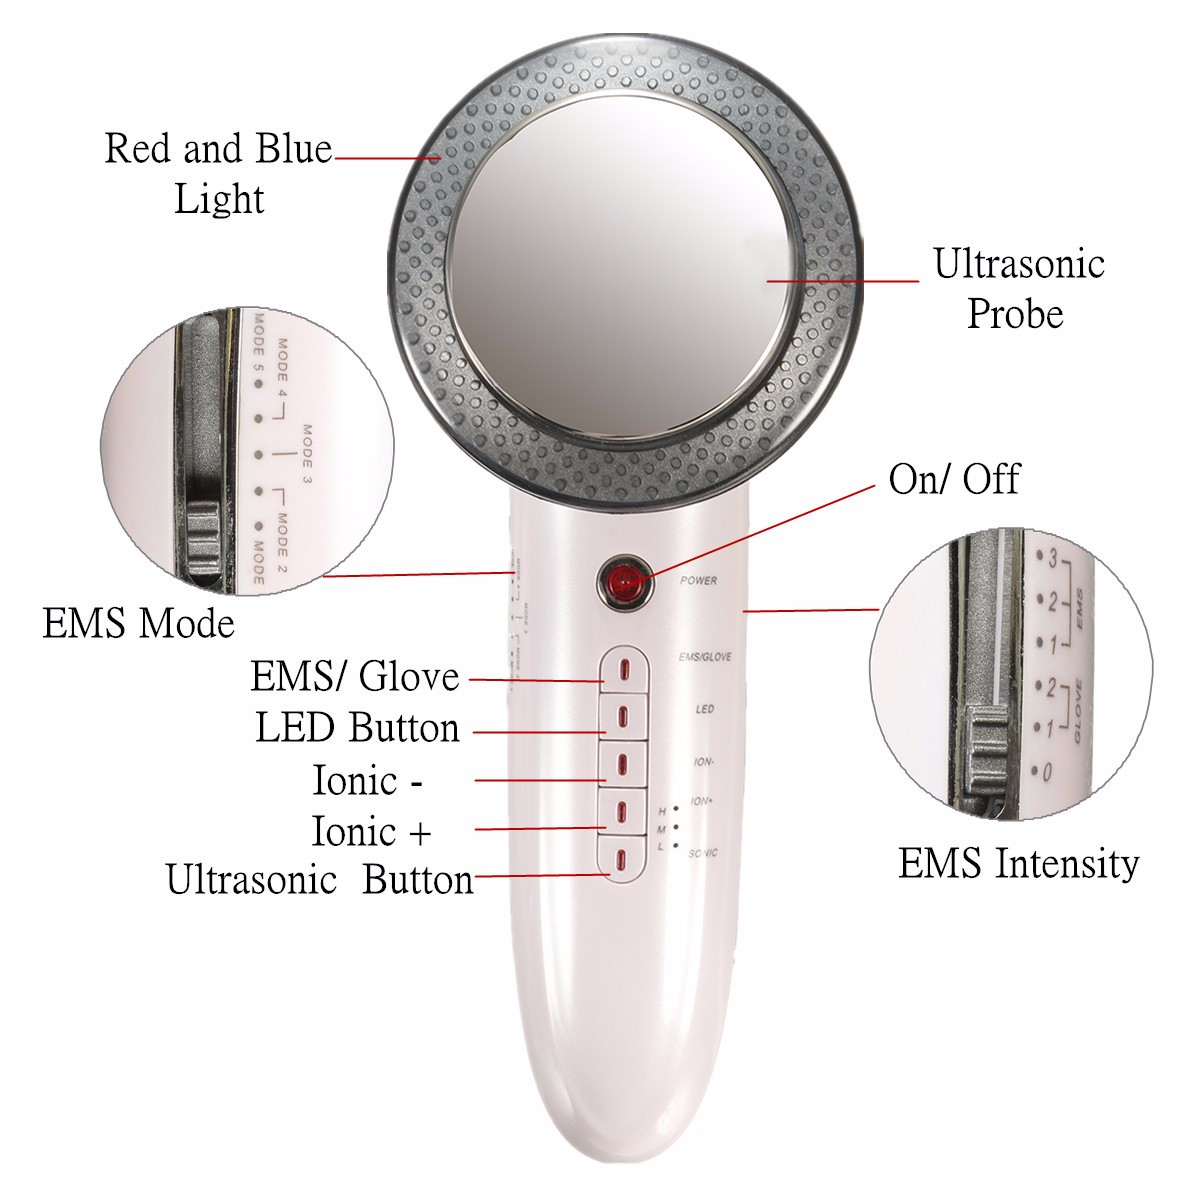 6 in 1 Ultrasonic LED Facial Care Body Slimming Massager Anti-fatigue Anti-cellulite Machine